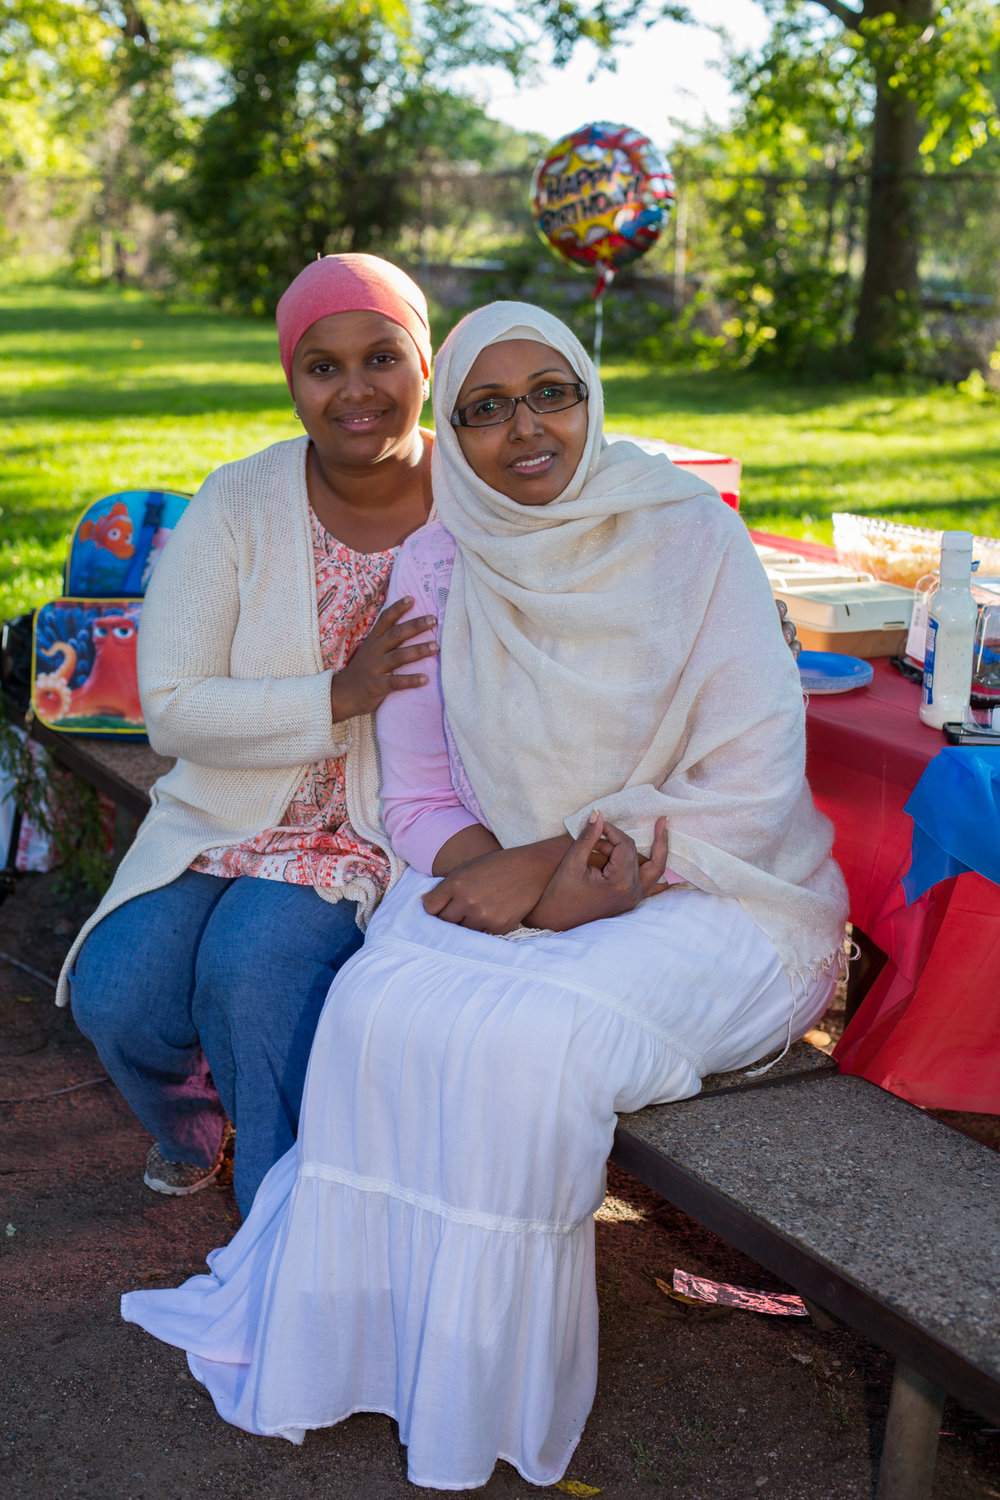 Malika, left, with her stepmother Samiya, right